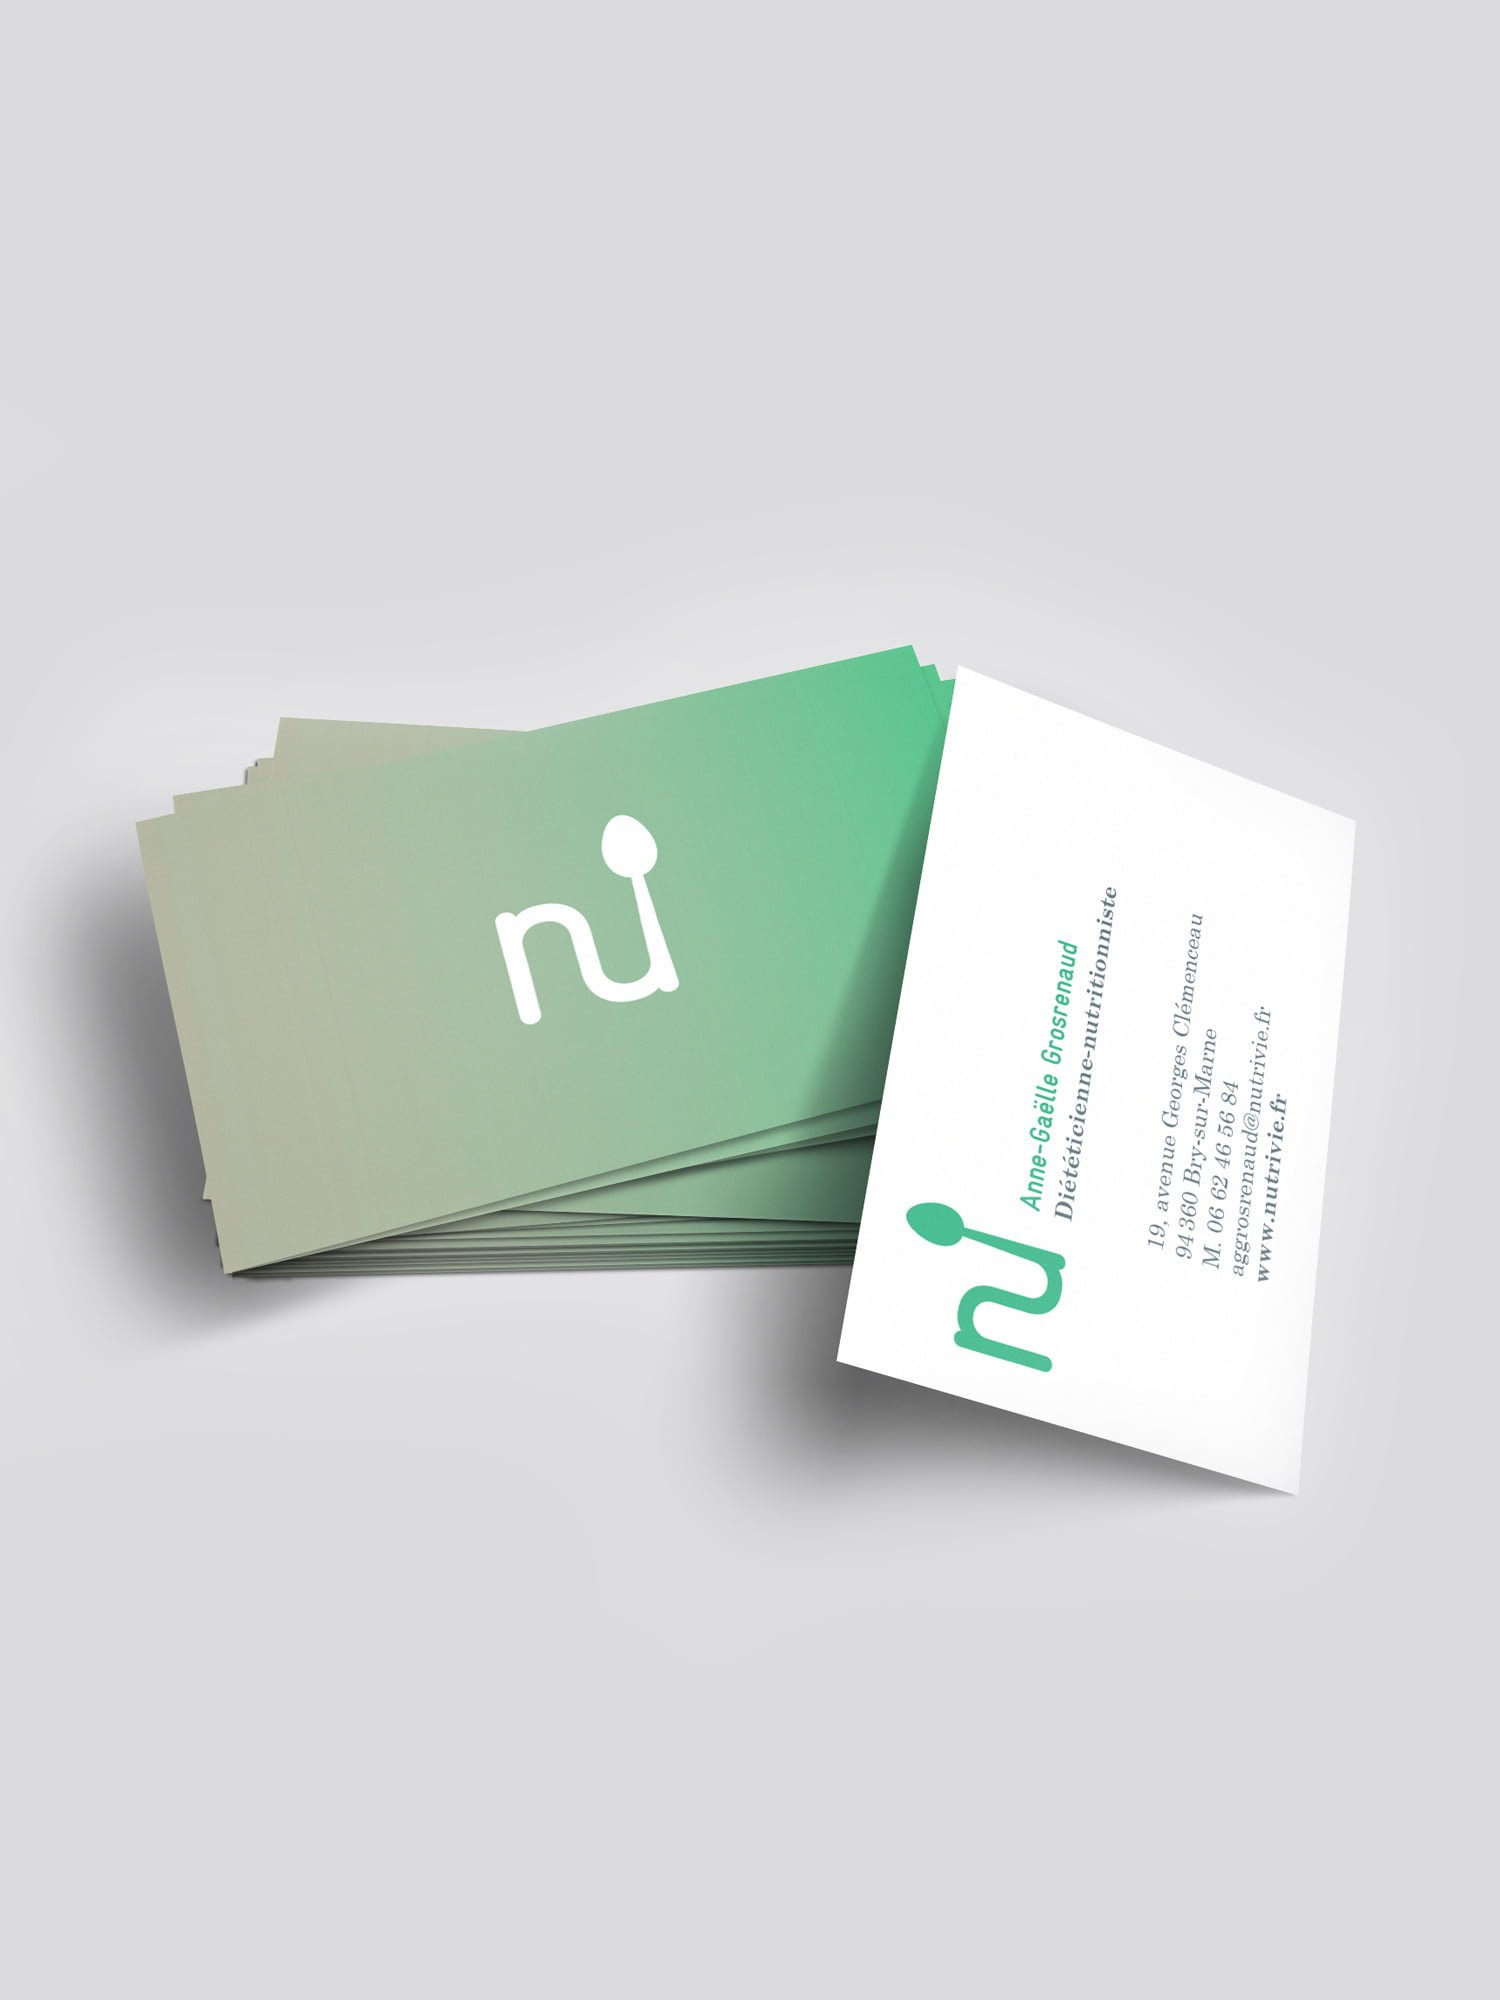 nutrivie,aurelie bert,identité visuelle,logo,creation,graphisme